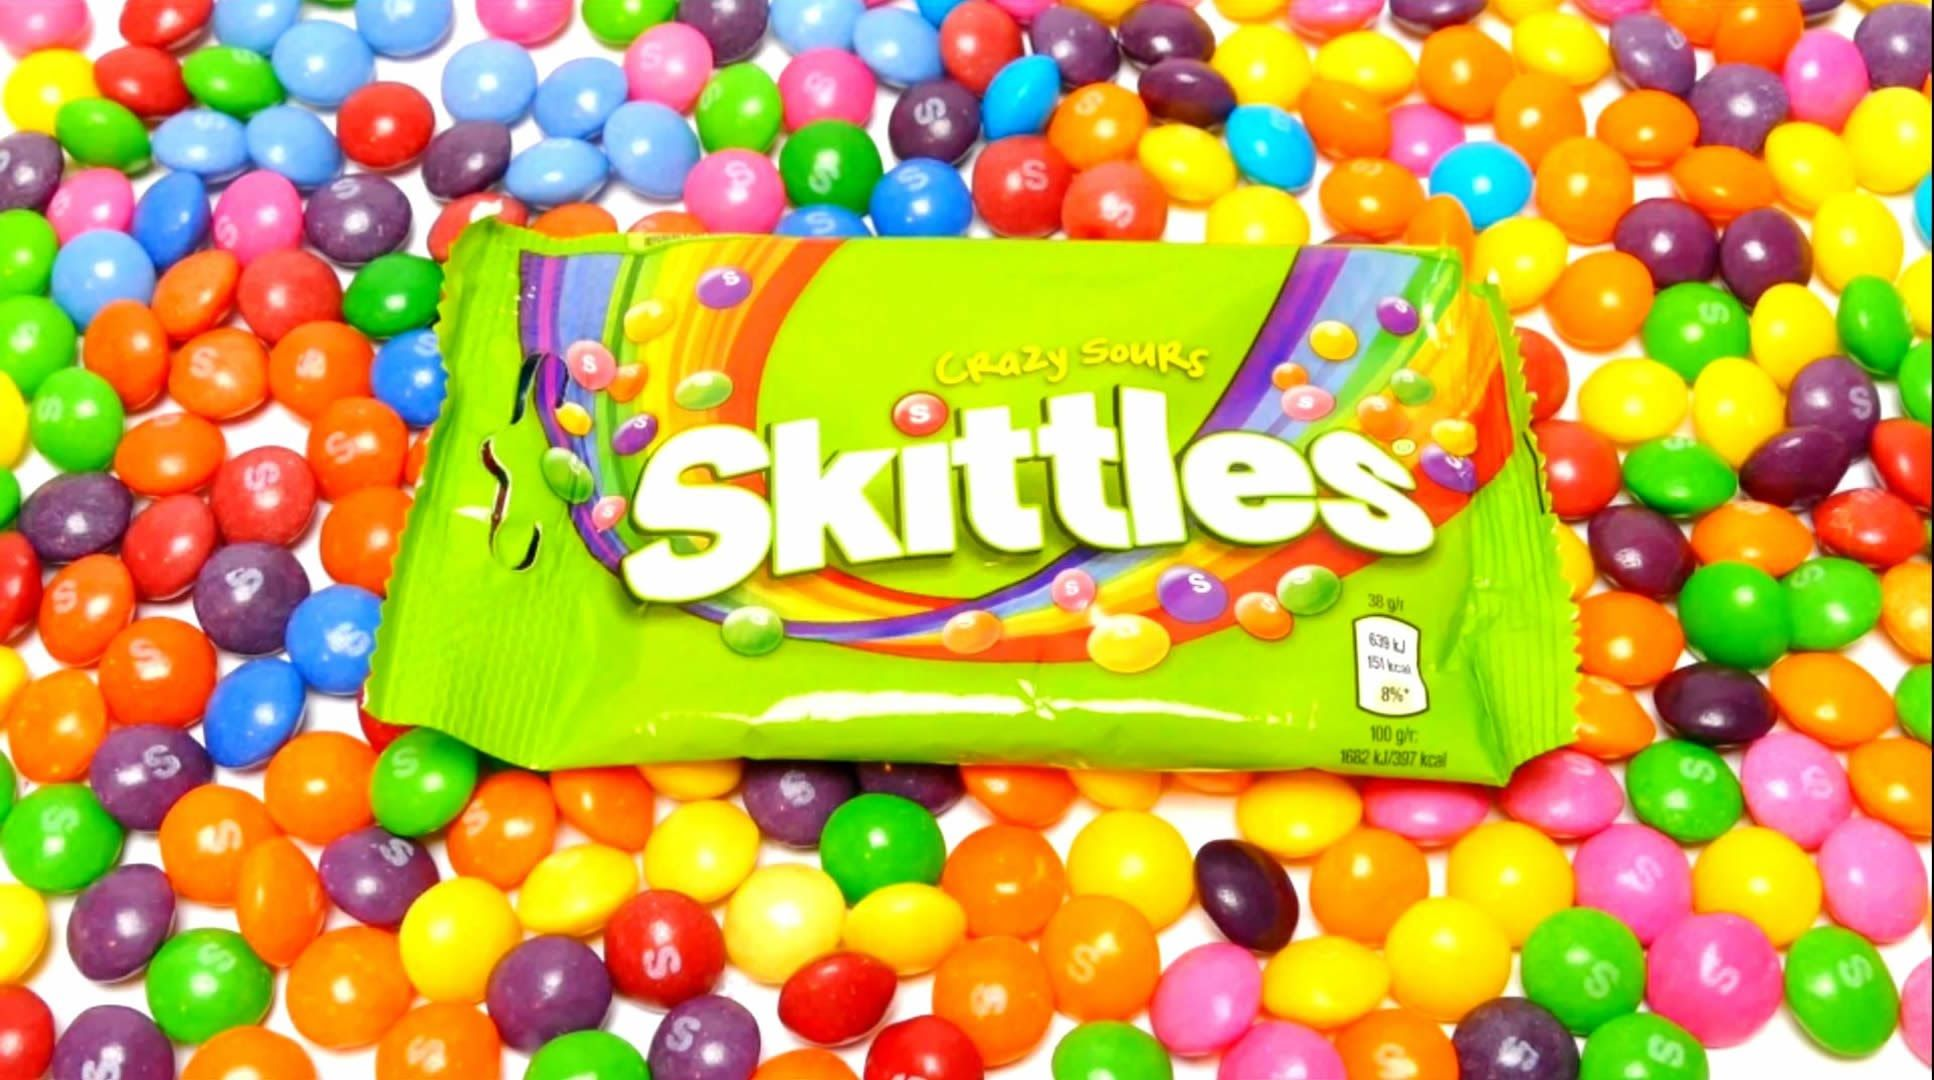 6 Skittles Flavors - Fruits, Crazy Sour, Confused, Tropical